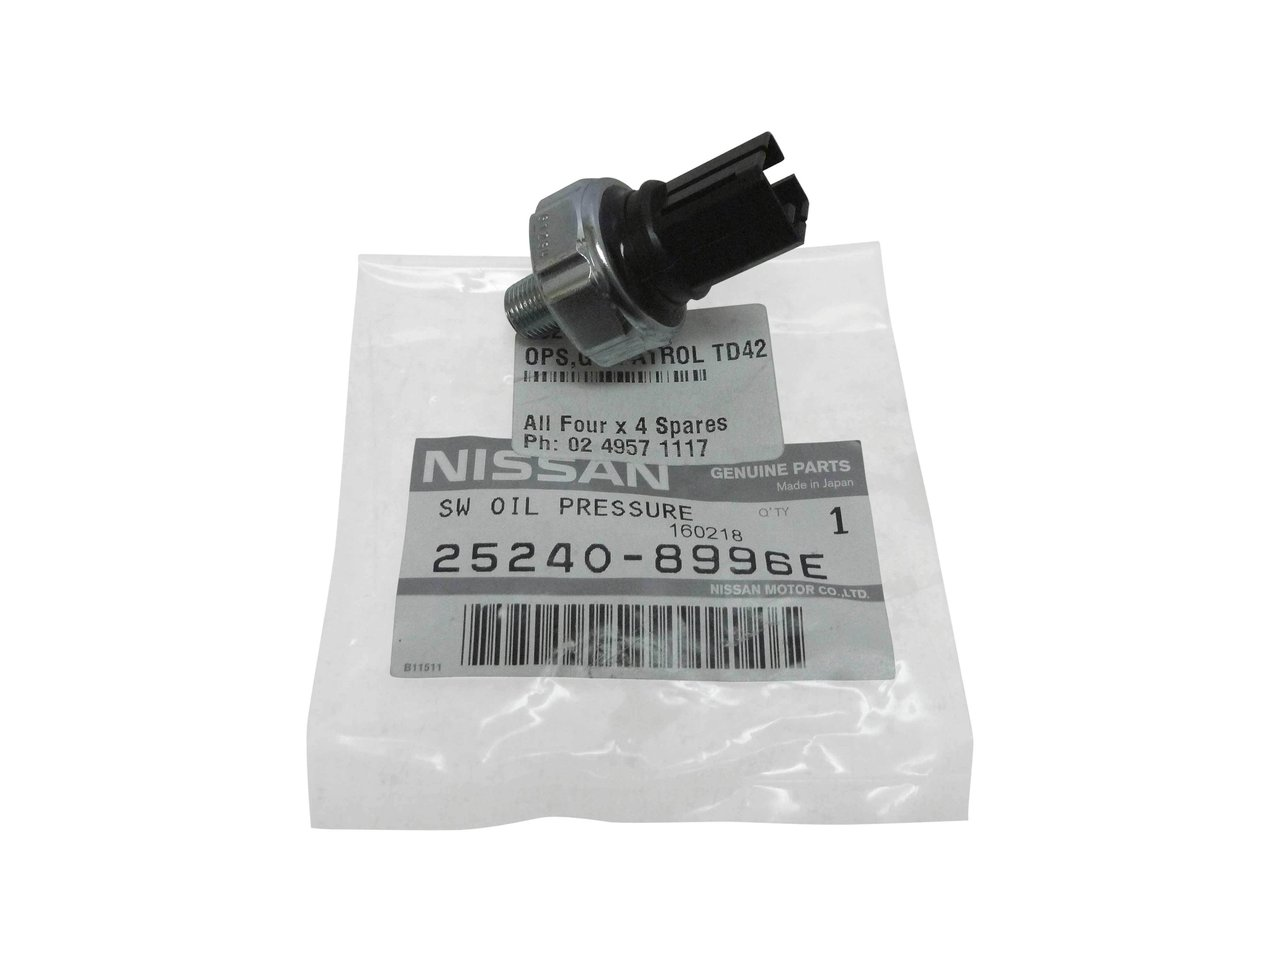 Nissan Patrol Engine Oil Oem Genuine Oil Filter Housing To Fit Nissan Gu Patrol And Nissan